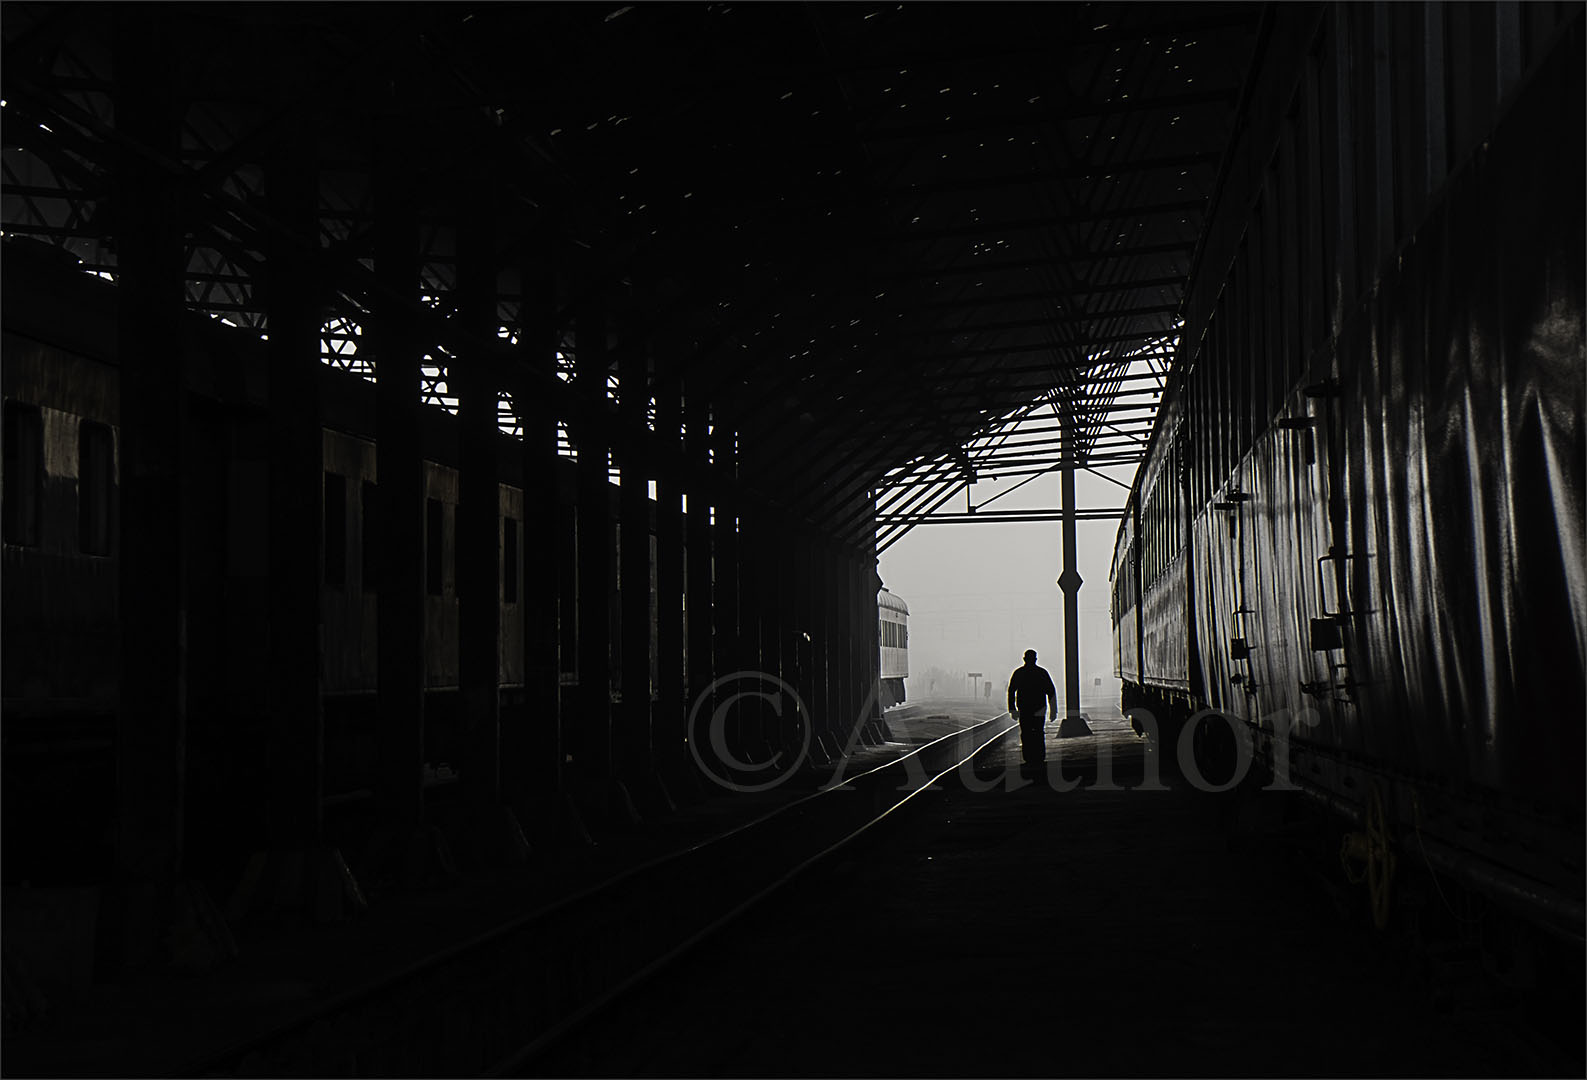 4_PI_Man at the end of the train shed_Clare Appleyard